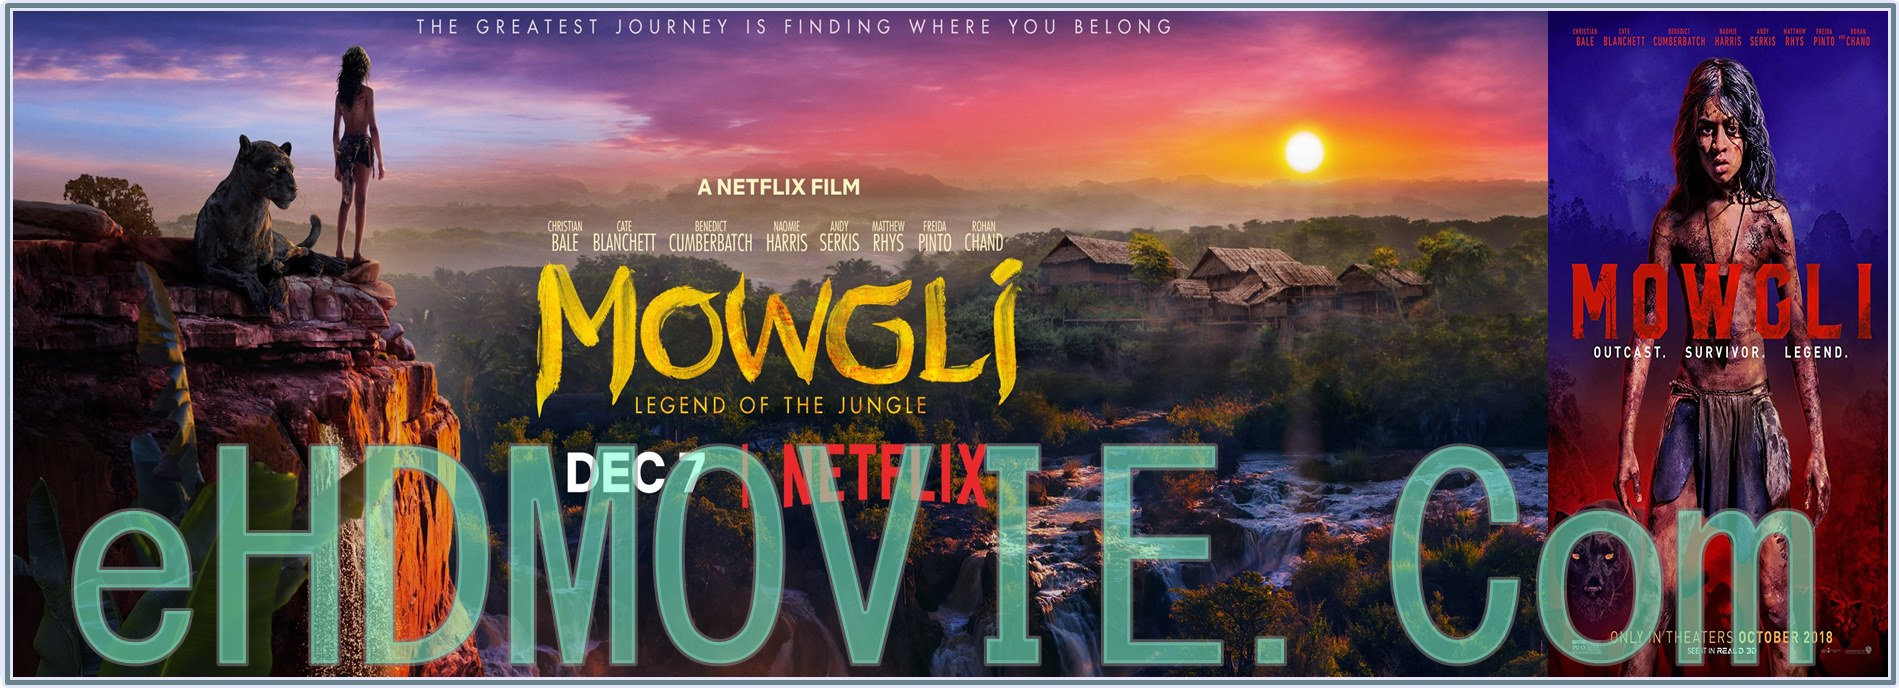 Mowgli Legend of the Jungle 2018 Full Movie Dual Audio [Hindi – English] 1080p - 720p - HEVC - 480p ORG Blu-Ray 350MB - 550MB - 950MB - 2GB ESubs Free Download